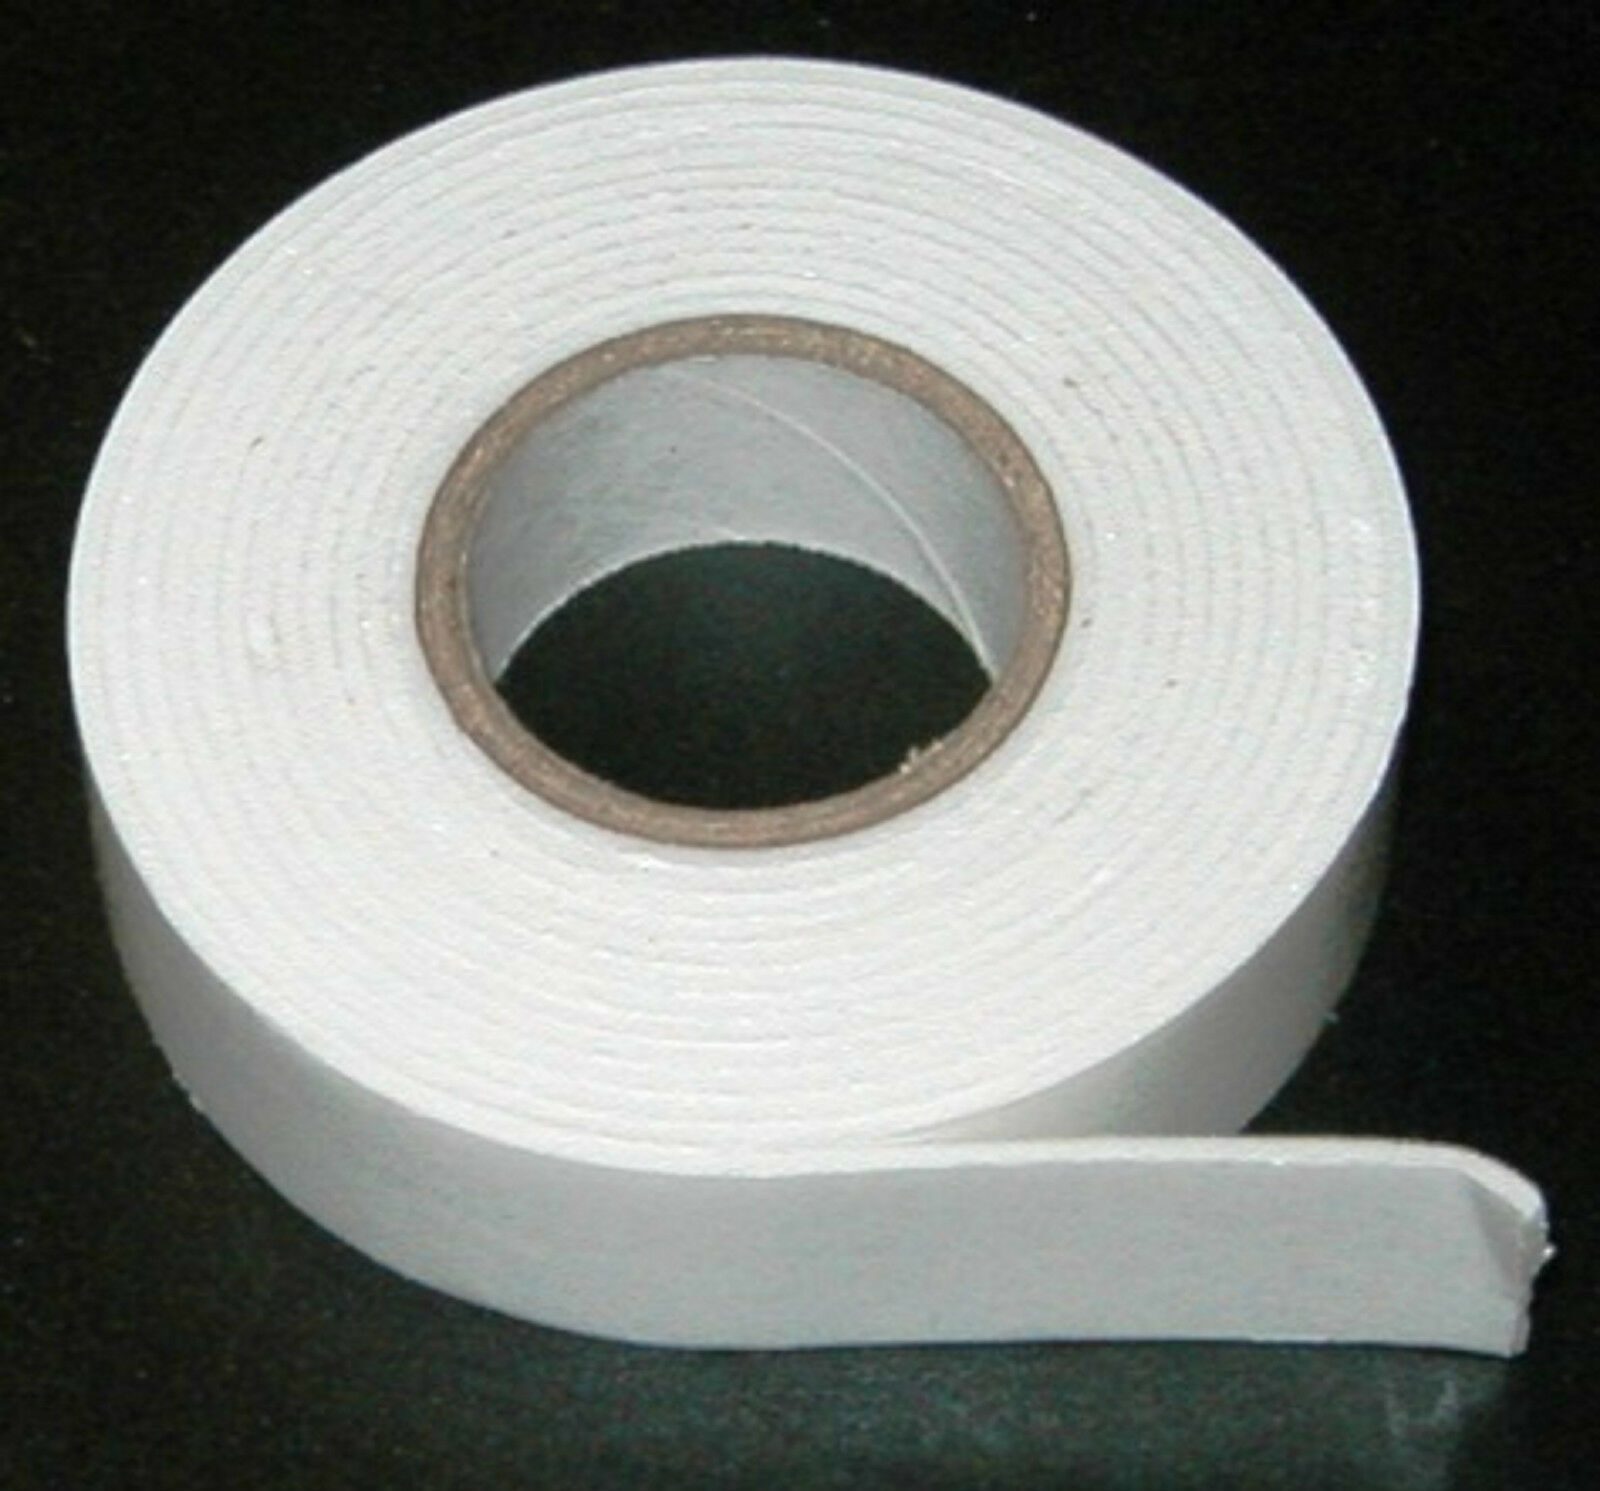 Double Sided  Adhesive Sticky Tape /& Foam Pads Craft Card Making Scrap Booking